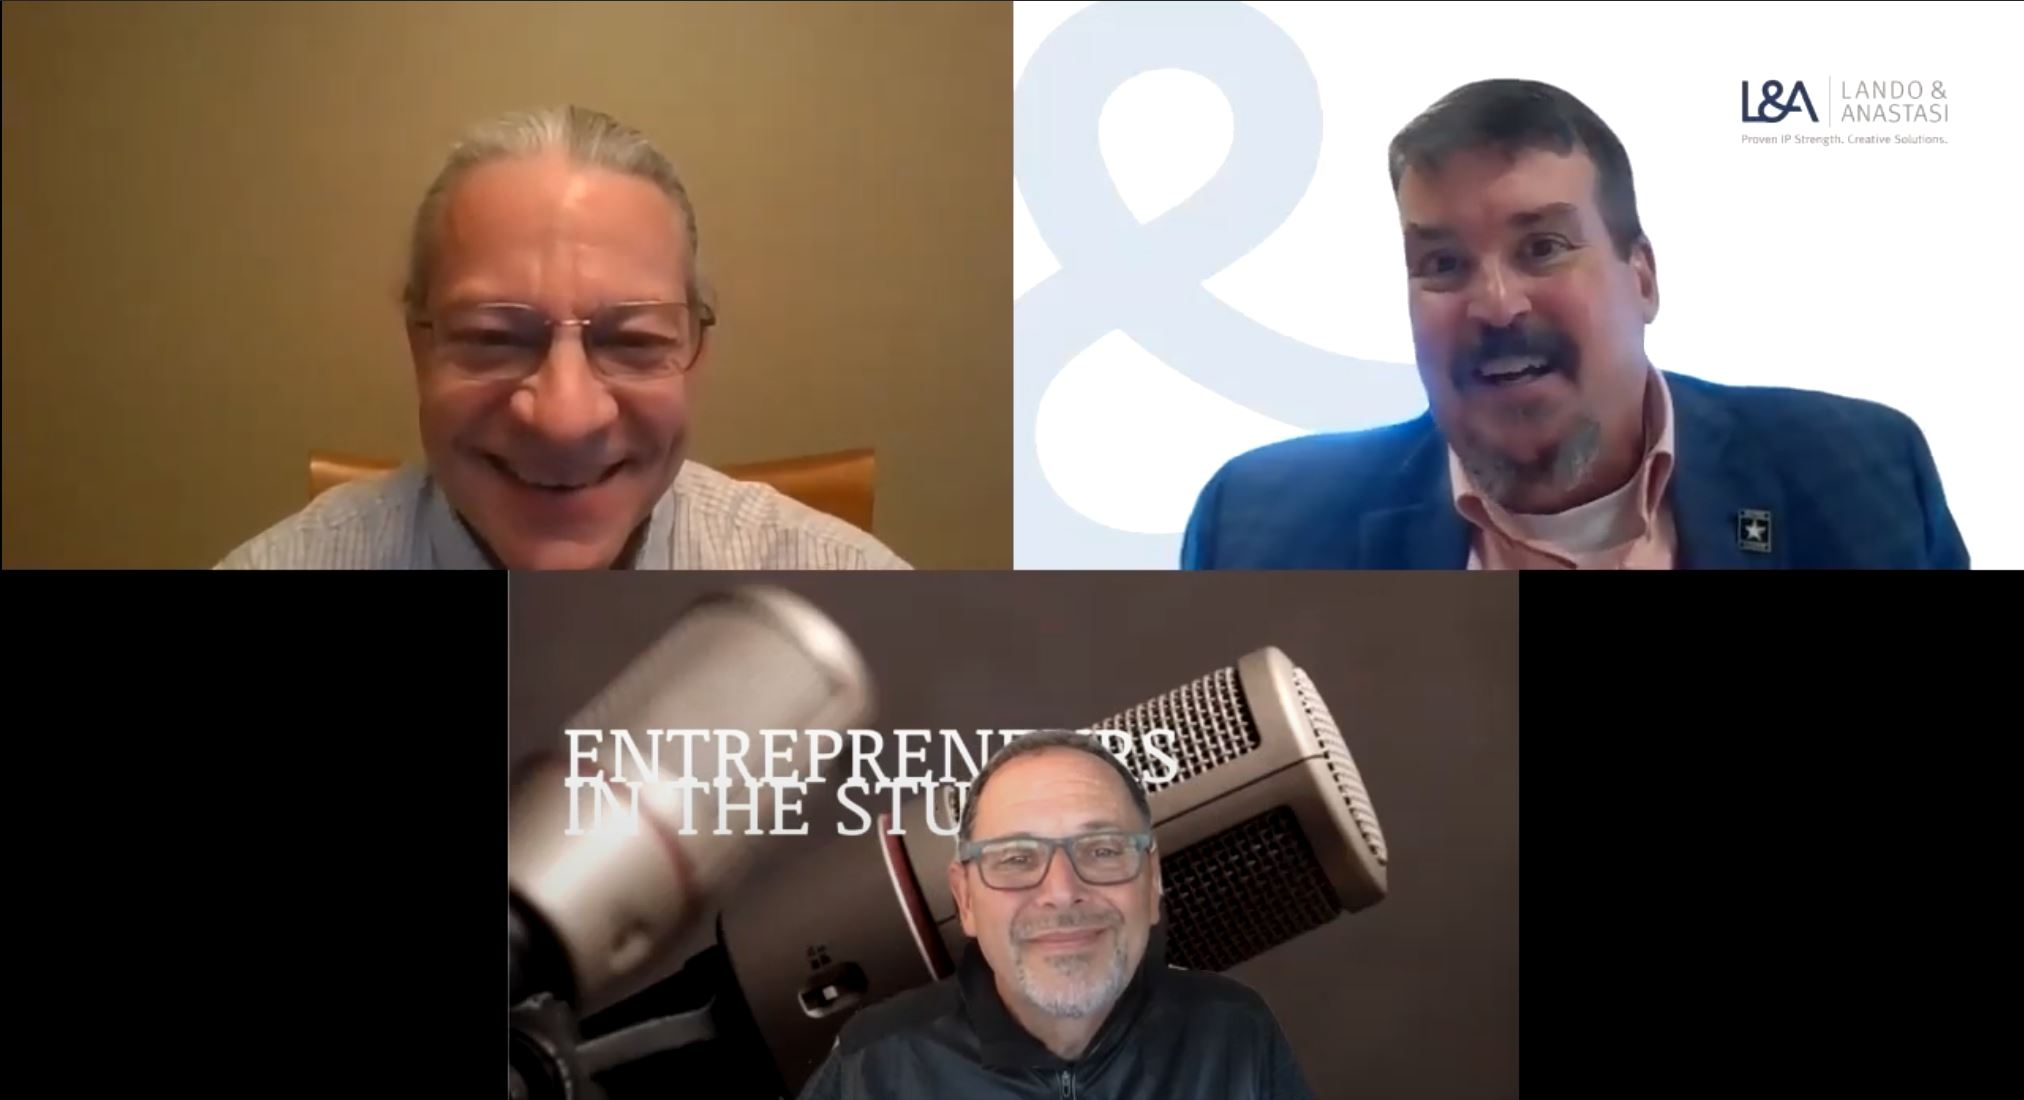 """""""How Lando & Anastasi Works Directly With Inventors"""" w/ Keith Noe of L&A Law, & Tom Prentice of ITW Electronic Assembly Equipment"""